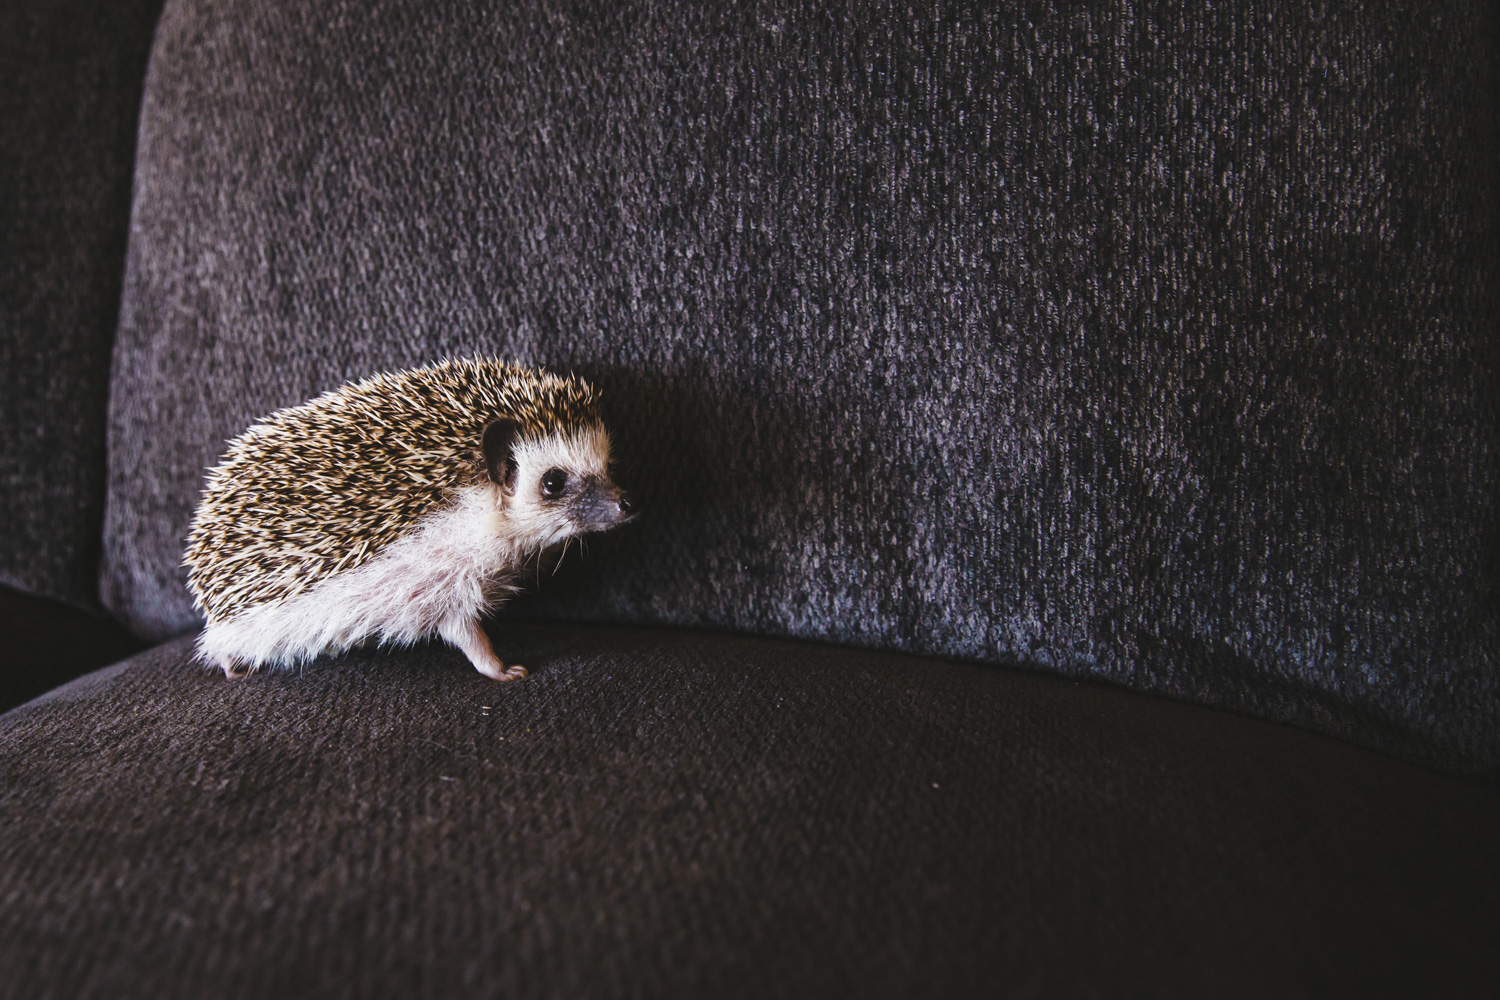 "We've had dogs. We've had cats. Heck, we've even had birds! We haven't yet had a hedgehog so this is a HUGE day at RUFFined! Meet Pip the African Pygmy Hedgehog. Pip is one and can be described as a ""quill potato."" Pip has been one adventurous hedgehog, exploring the PNW with his parents - from ferry trips to hikes to pumpkin patches! Pip likes running on his wheel, mealworms, destroying cat toys, forehead rubs and playing in the grass. Pip dislikes baths, daylight, strangers, loud noises, belly rubs and being on a diet. You can follow along with Pip on instagram, @pip.thehedgehog. The Seattle RUFFined Spotlight is a weekly profile of local pets living and loving life in the PNW. If you or someone you know has a pet you'd like featured, email us at hello@seattlerefined.com or tag #SeattleRUFFined and your furbaby could be the next spotlighted! (Image: Sunita Martini / Seattle Refined)."